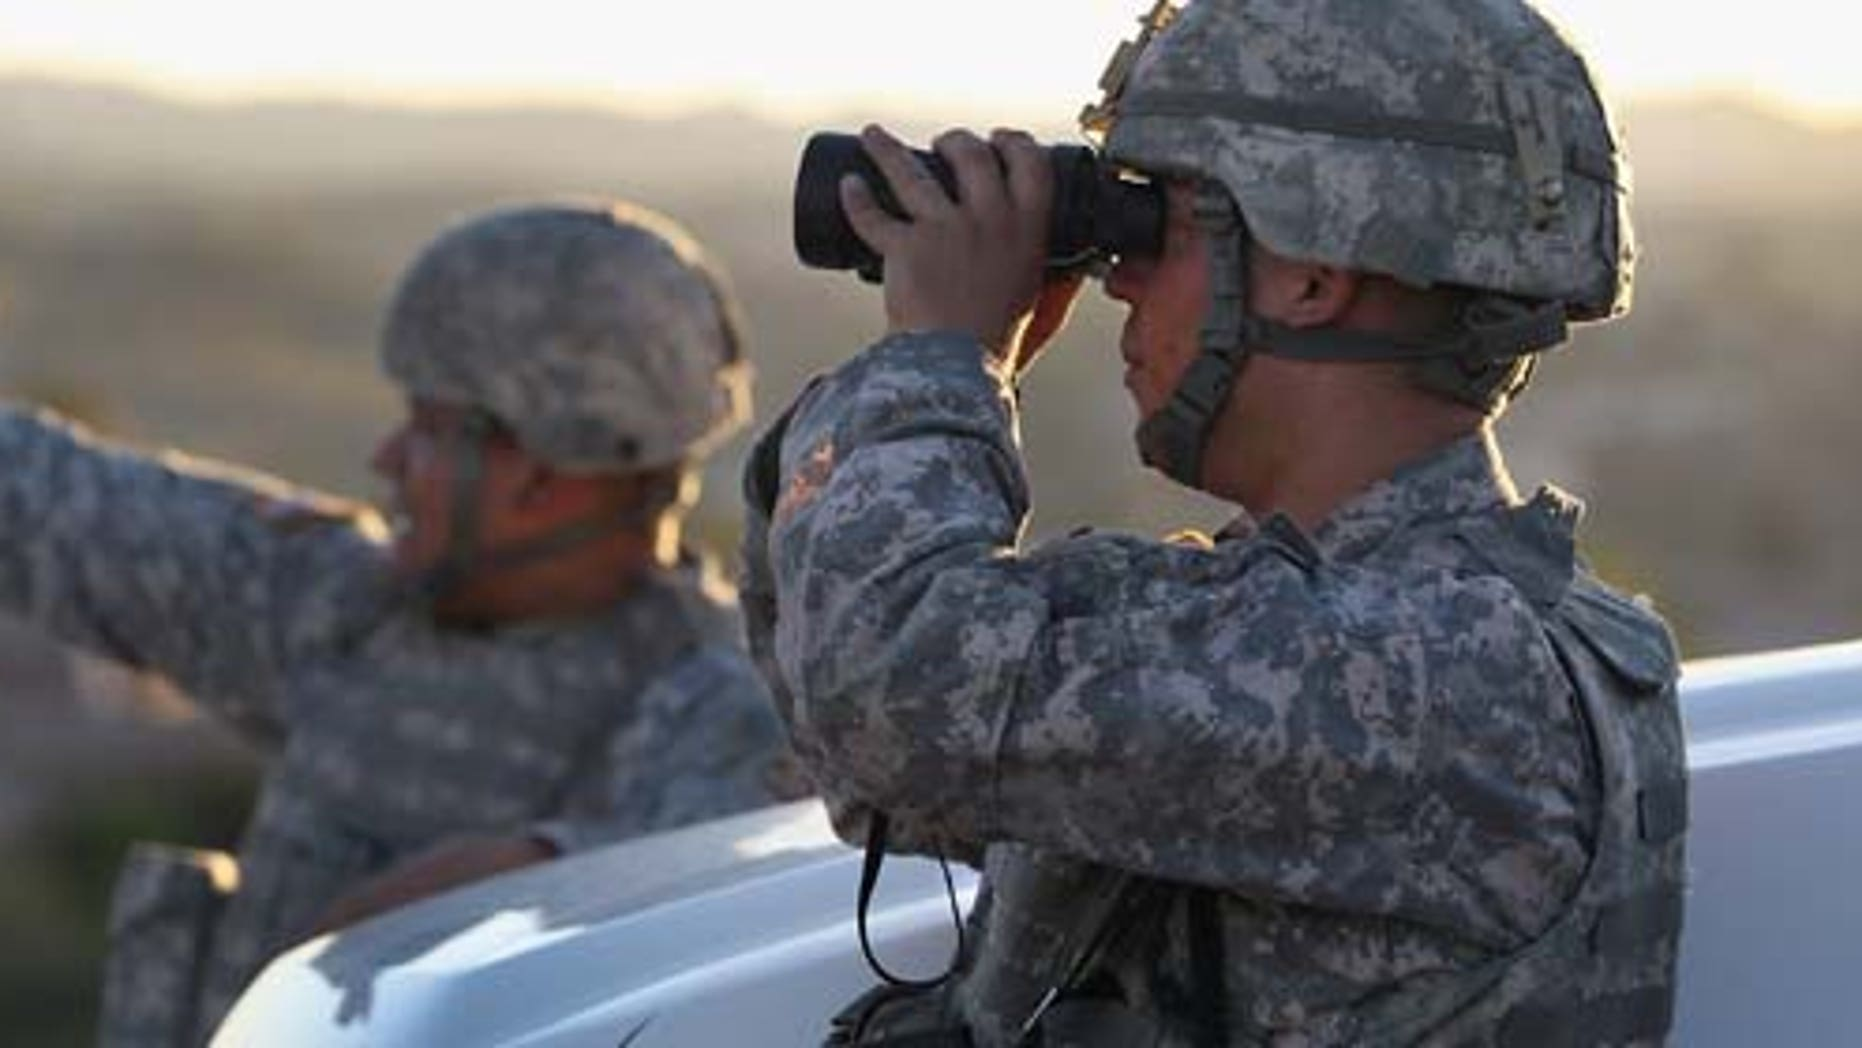 NOGALES, AZ - JUNE 22:  U.S. Army National Guardsmen scan the U.S.-Mexico border on June 22, 2011 in Nogales, Arizona. The Obama administration will reduce the number of troops along the Mexican border, a spokesman for a Texas congressman said on Dec. 13, 2011. (Photo by John Moore/Getty Images)